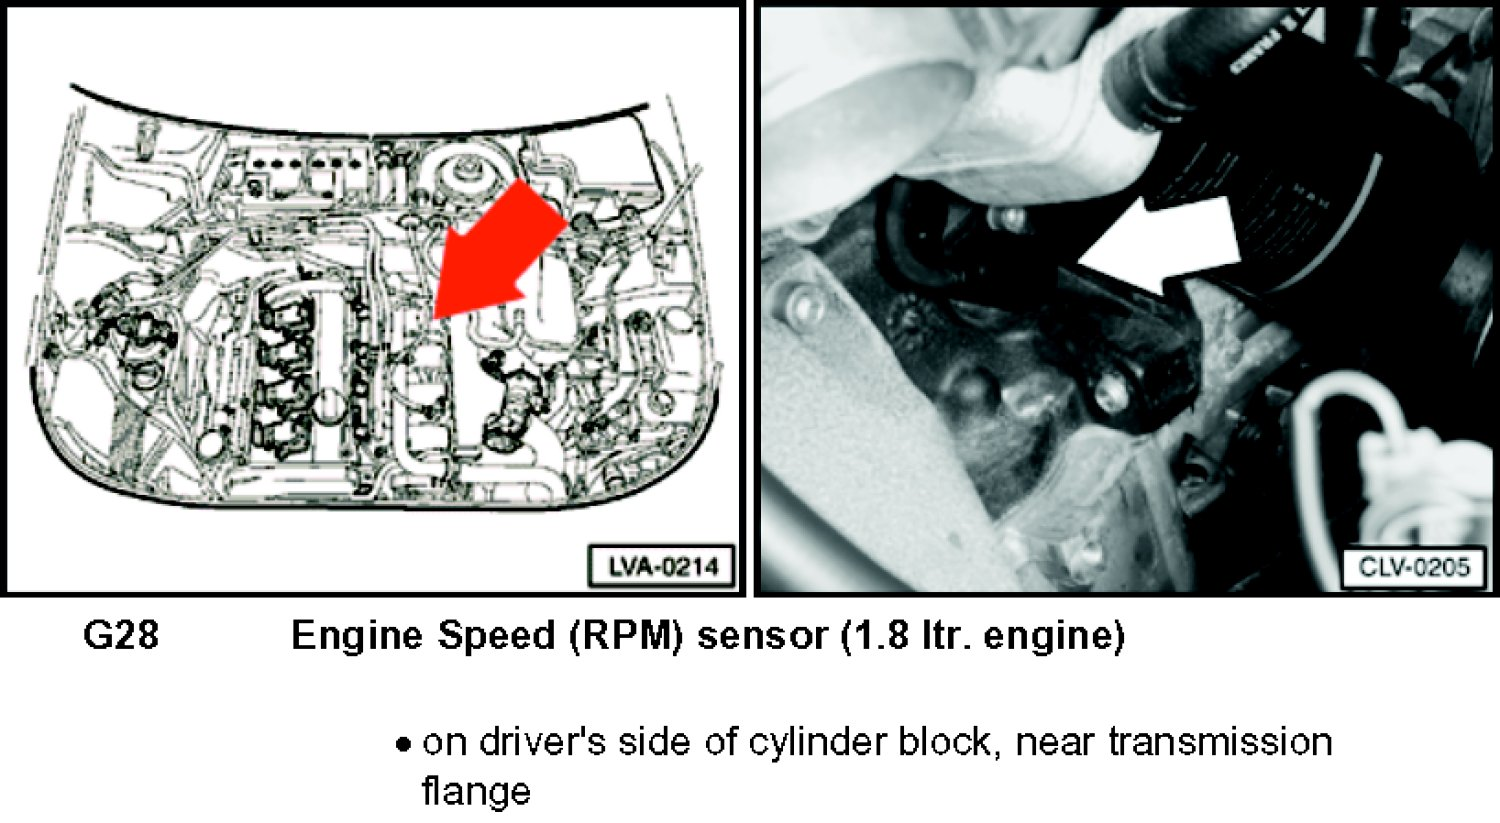 2003 Vw Passat 1 8 Turbo Engine Diagram Trusted Wiring Diagrams 2001 I Am Looking To Buy A Crank Sensor For 99